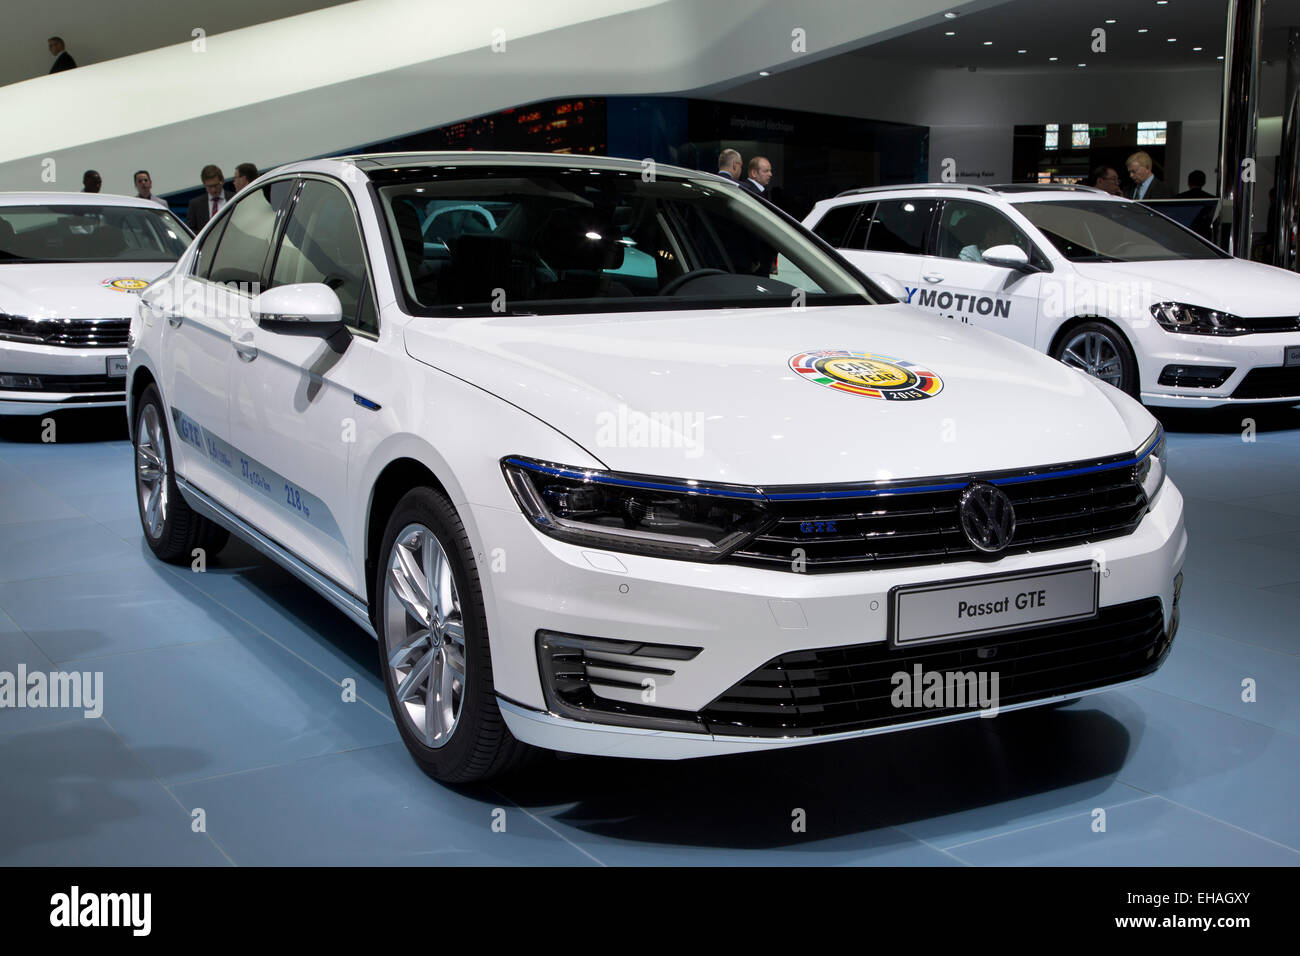 Volkswagen VW Passat, Car of the Year at the Geneva motor show 2015 - Stock Image